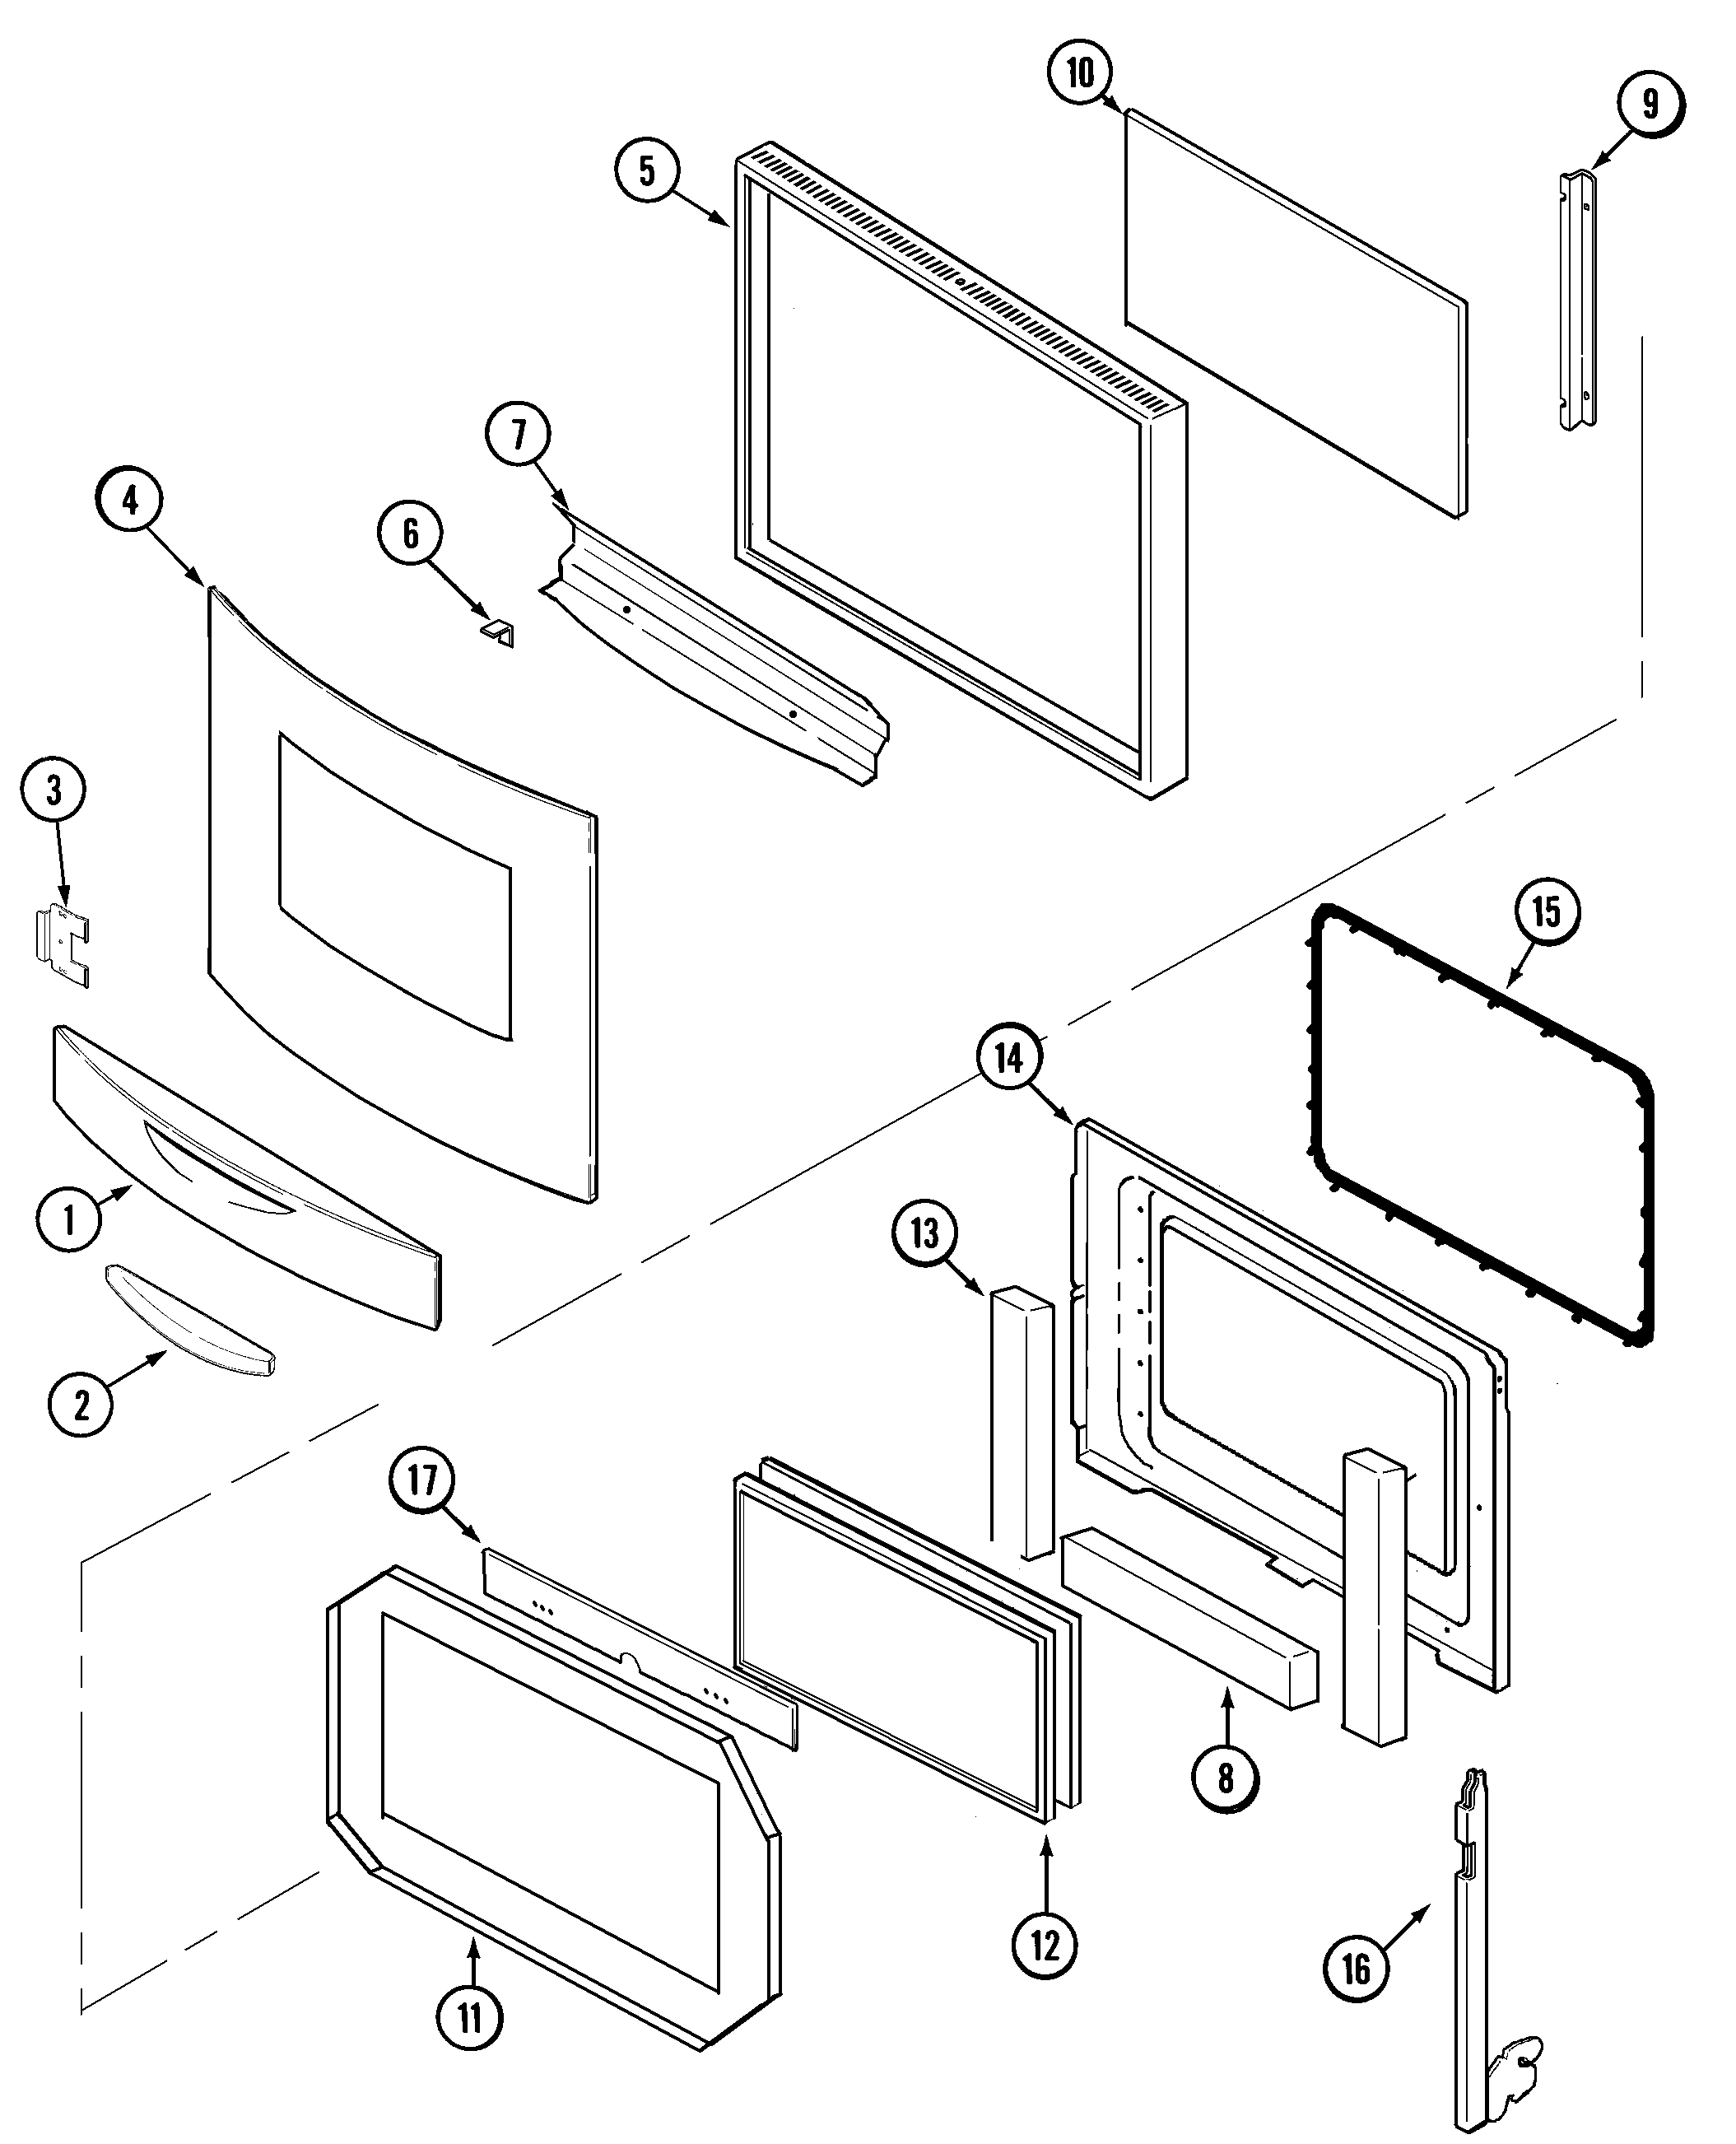 DOOR Diagram & Parts List for Model jmw9530bab Jenn-air